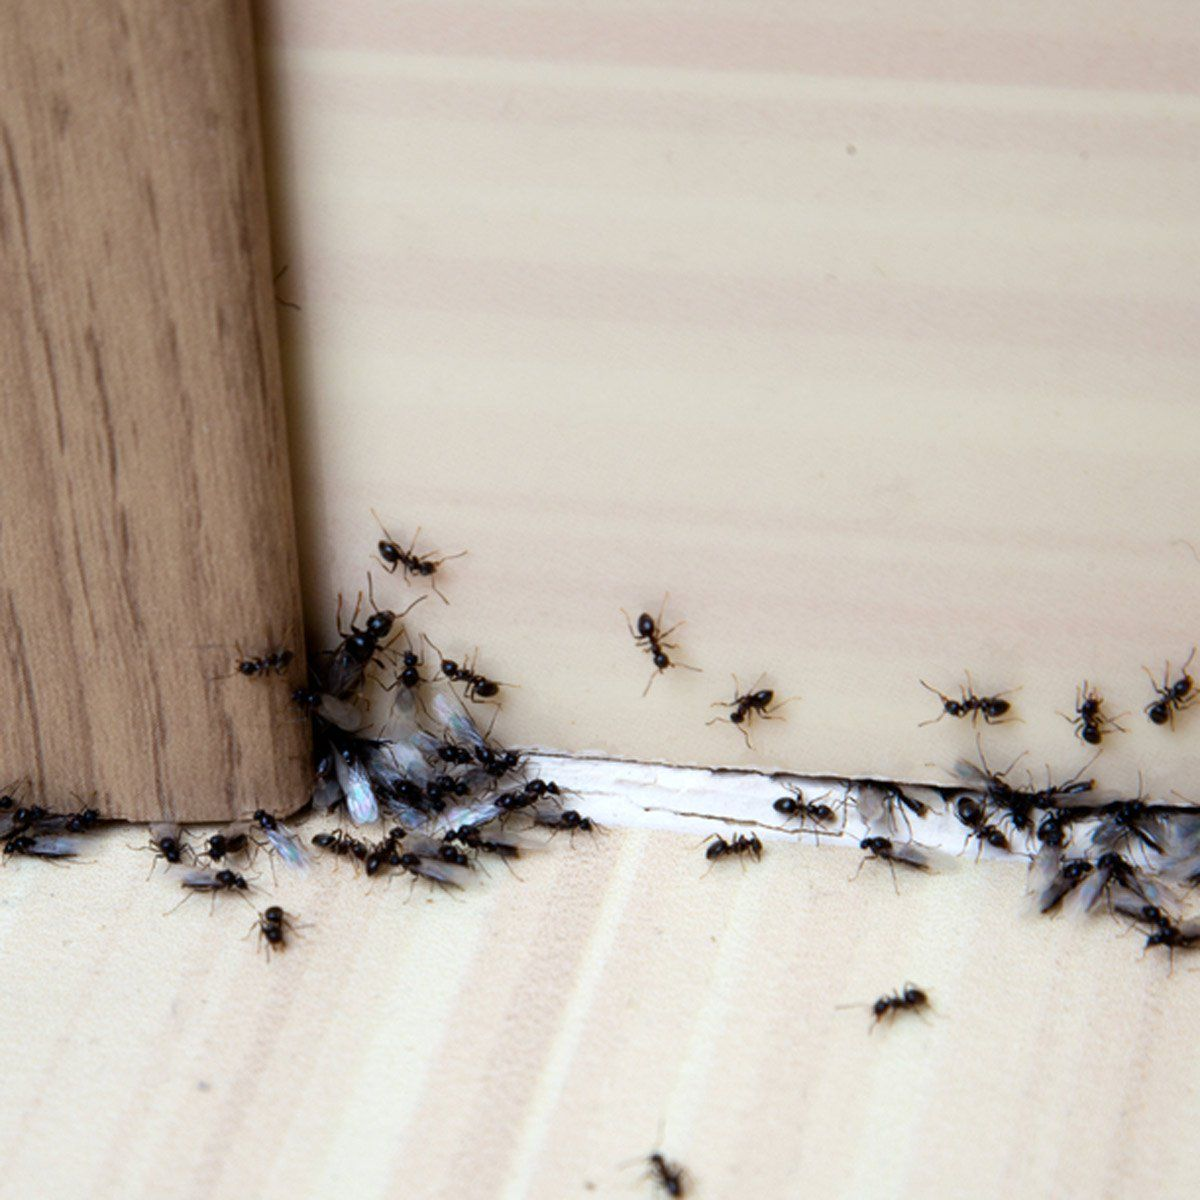 How To Quickly Get Rid Of Ants Get Rid Of Ants Rid Of Ants